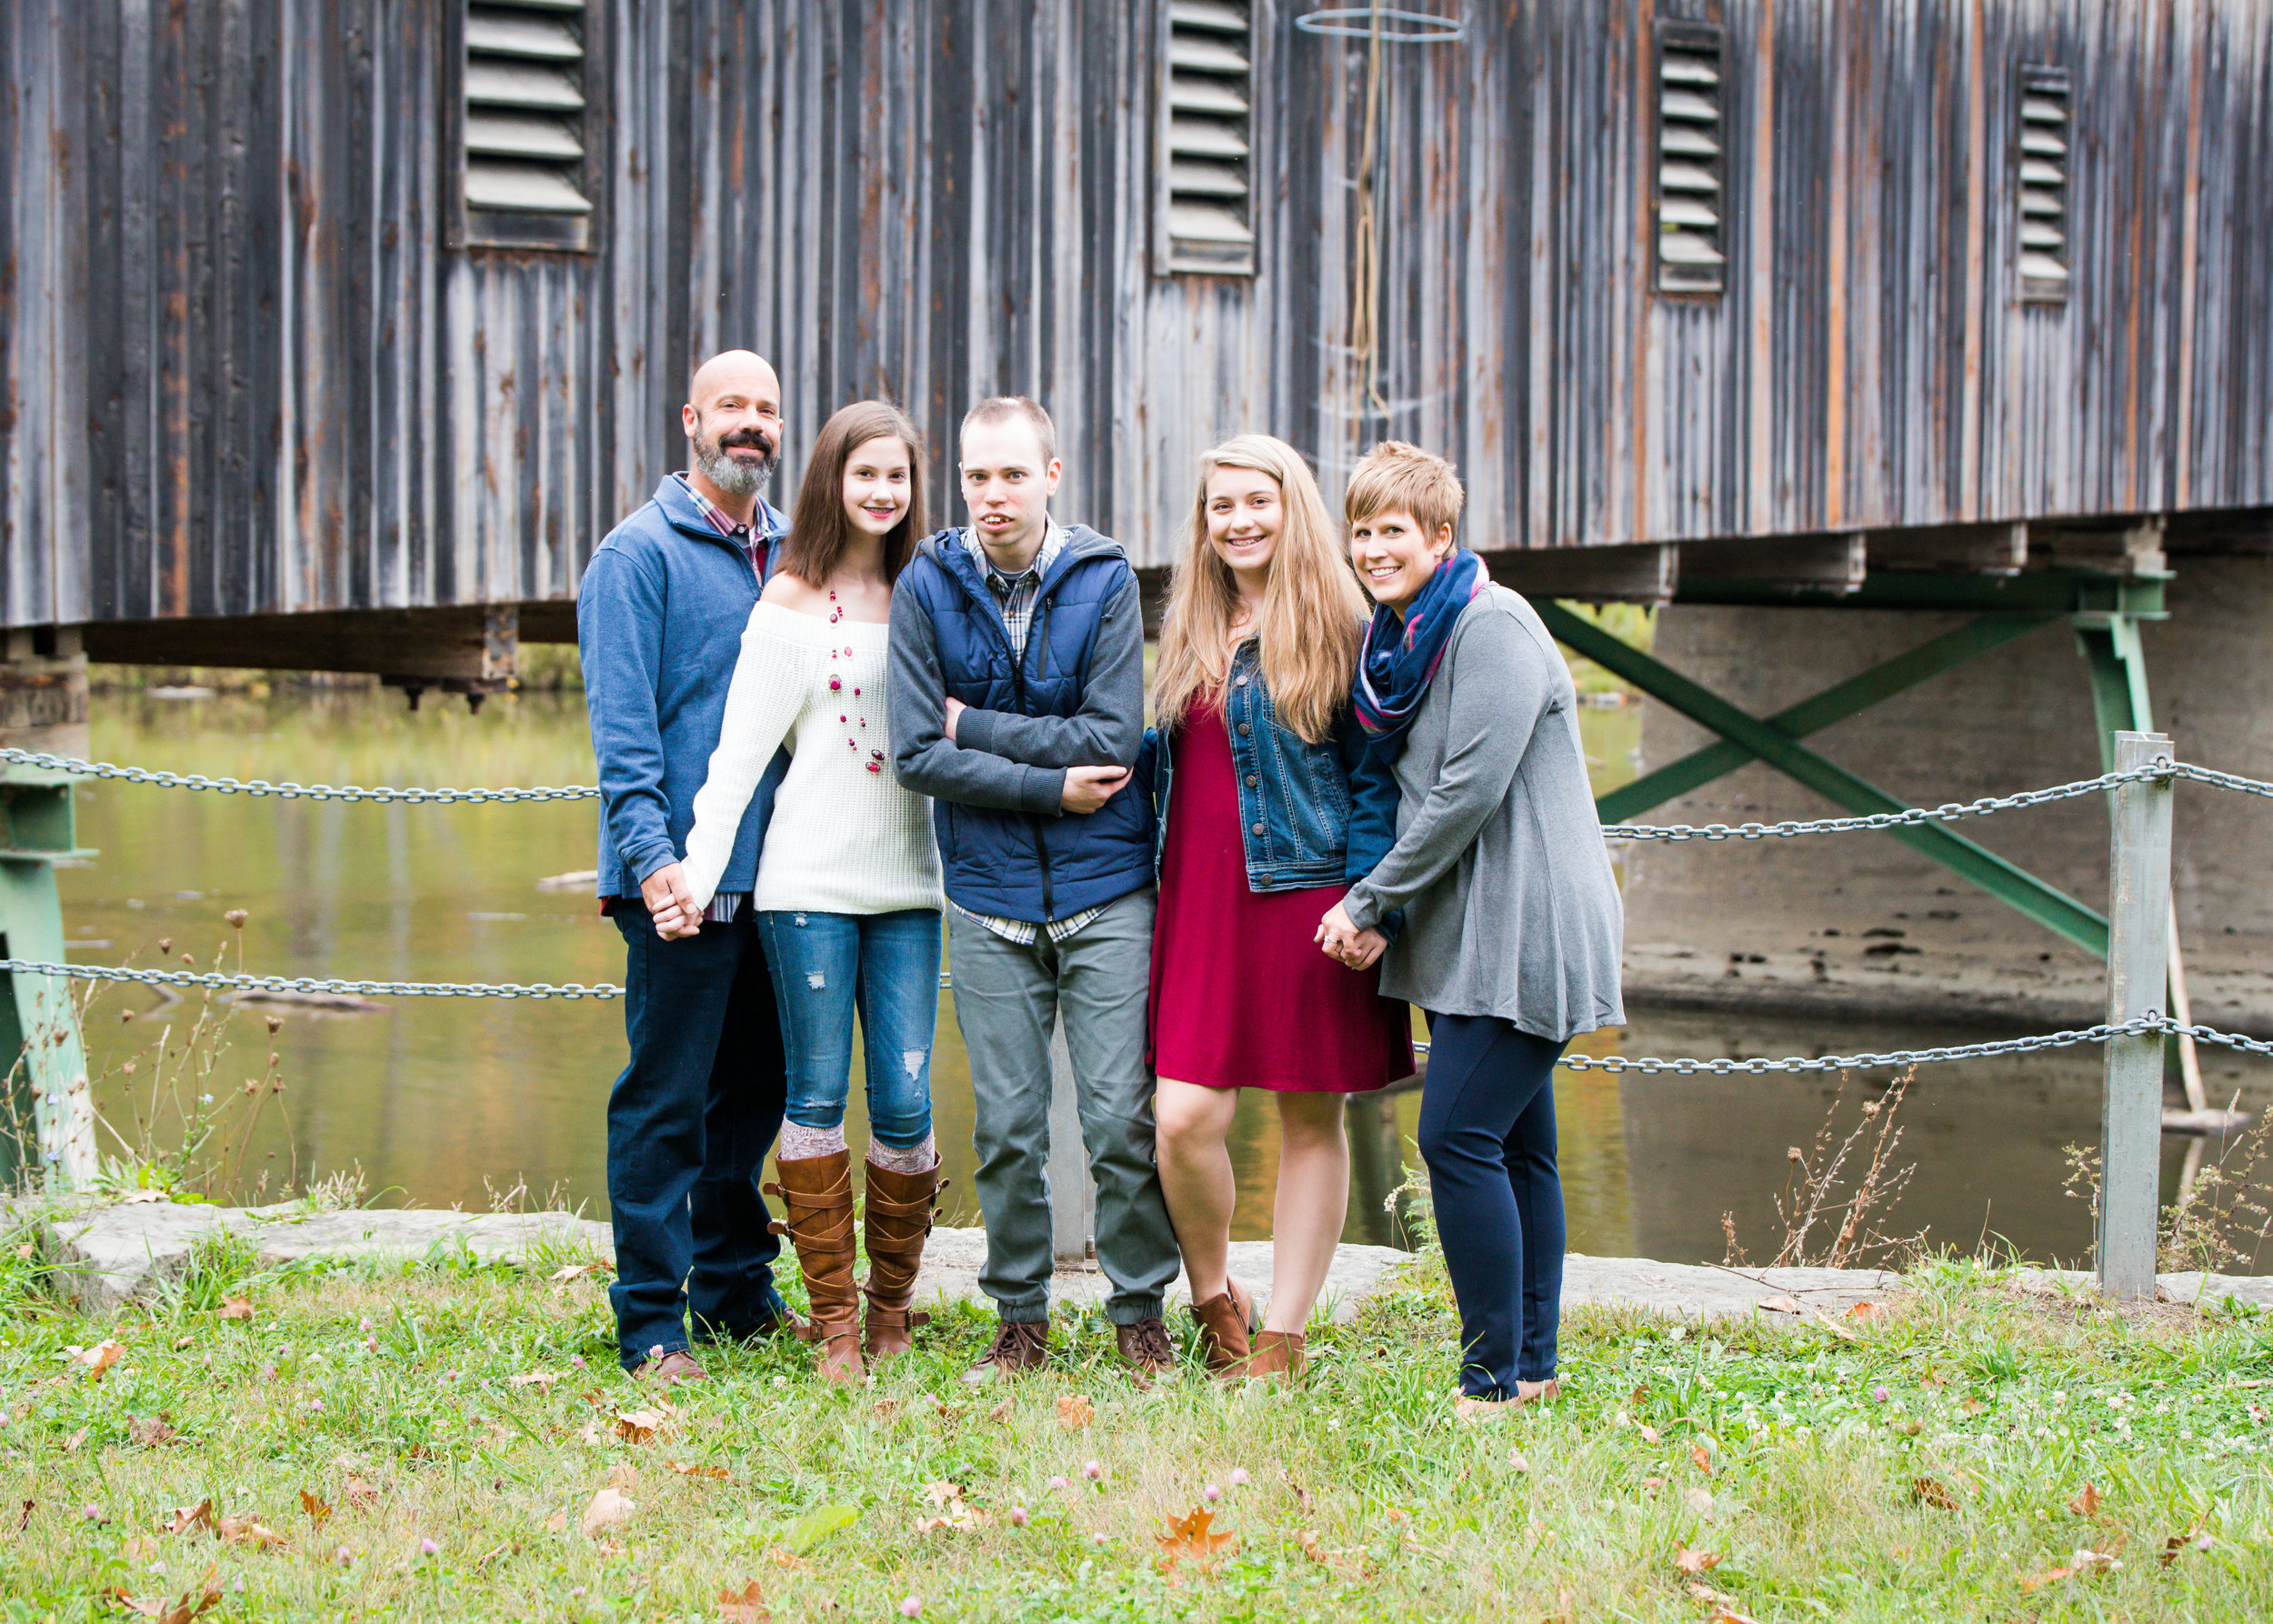 Fall Family Photography, family photos, Cleveland Family Photography, Cleveland Family Photographer